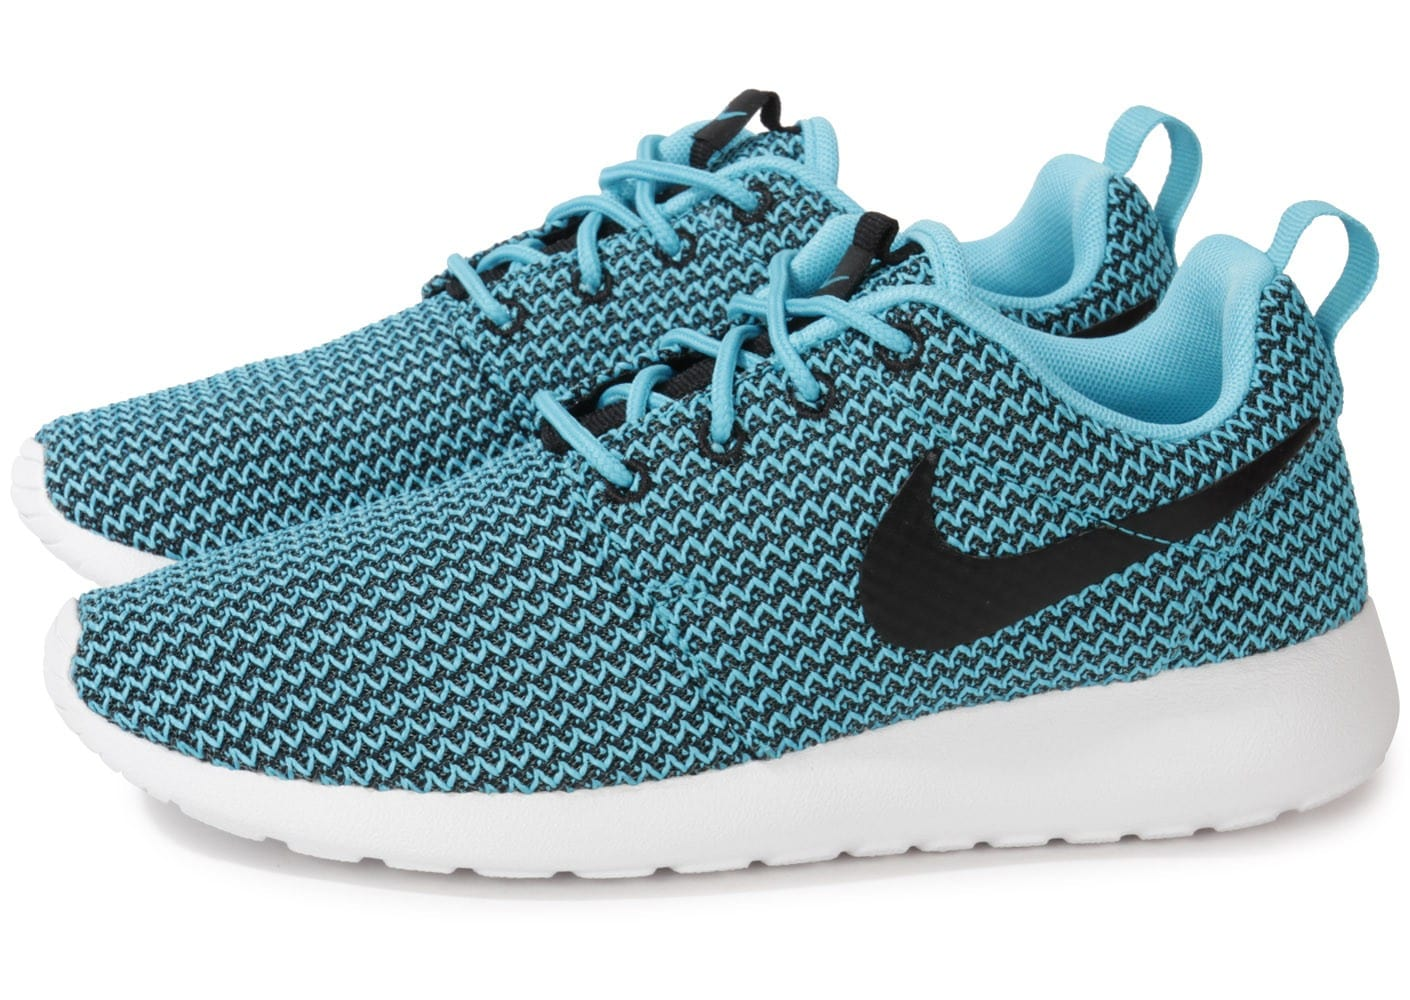 innovative design 94edf 8e5bb Cliquez pour zoomer Chaussures Nike Roshe Run Clear Water vue extérieure ...